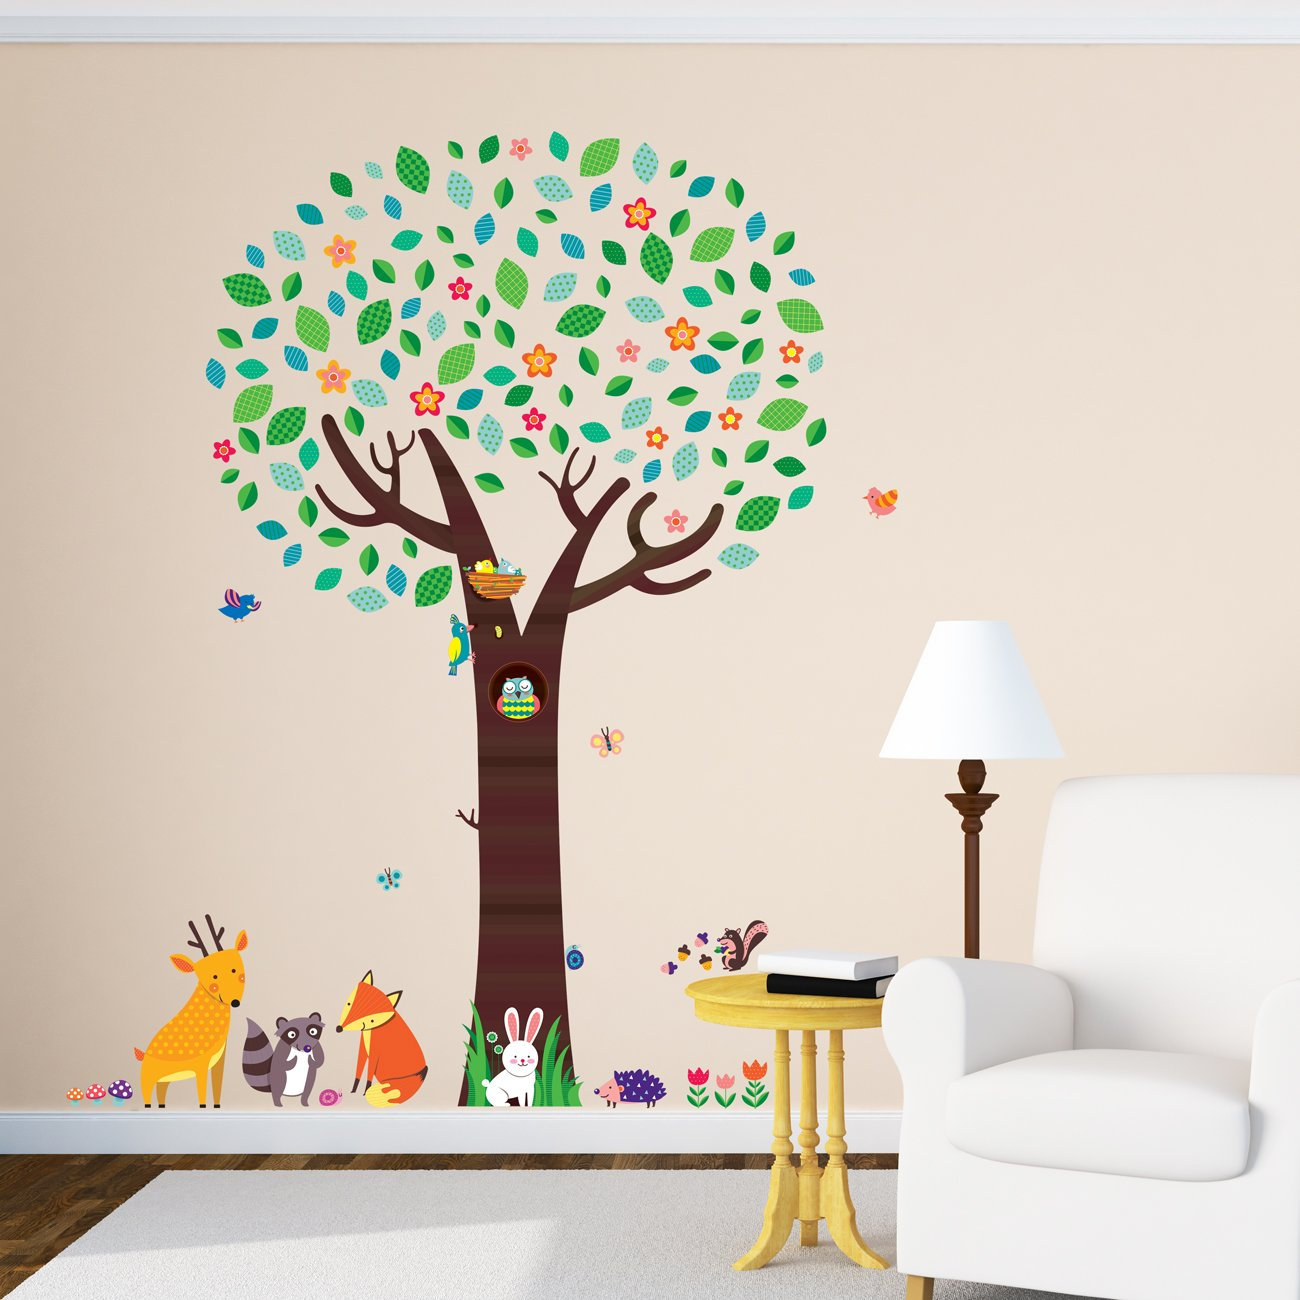 Decowall DM-1312 Large Tree with Animal Friends Kids Wall Stickers Wall Decals Peel and Stick Removable Wall Stickers for Kids Nursery Bedroom Living Room